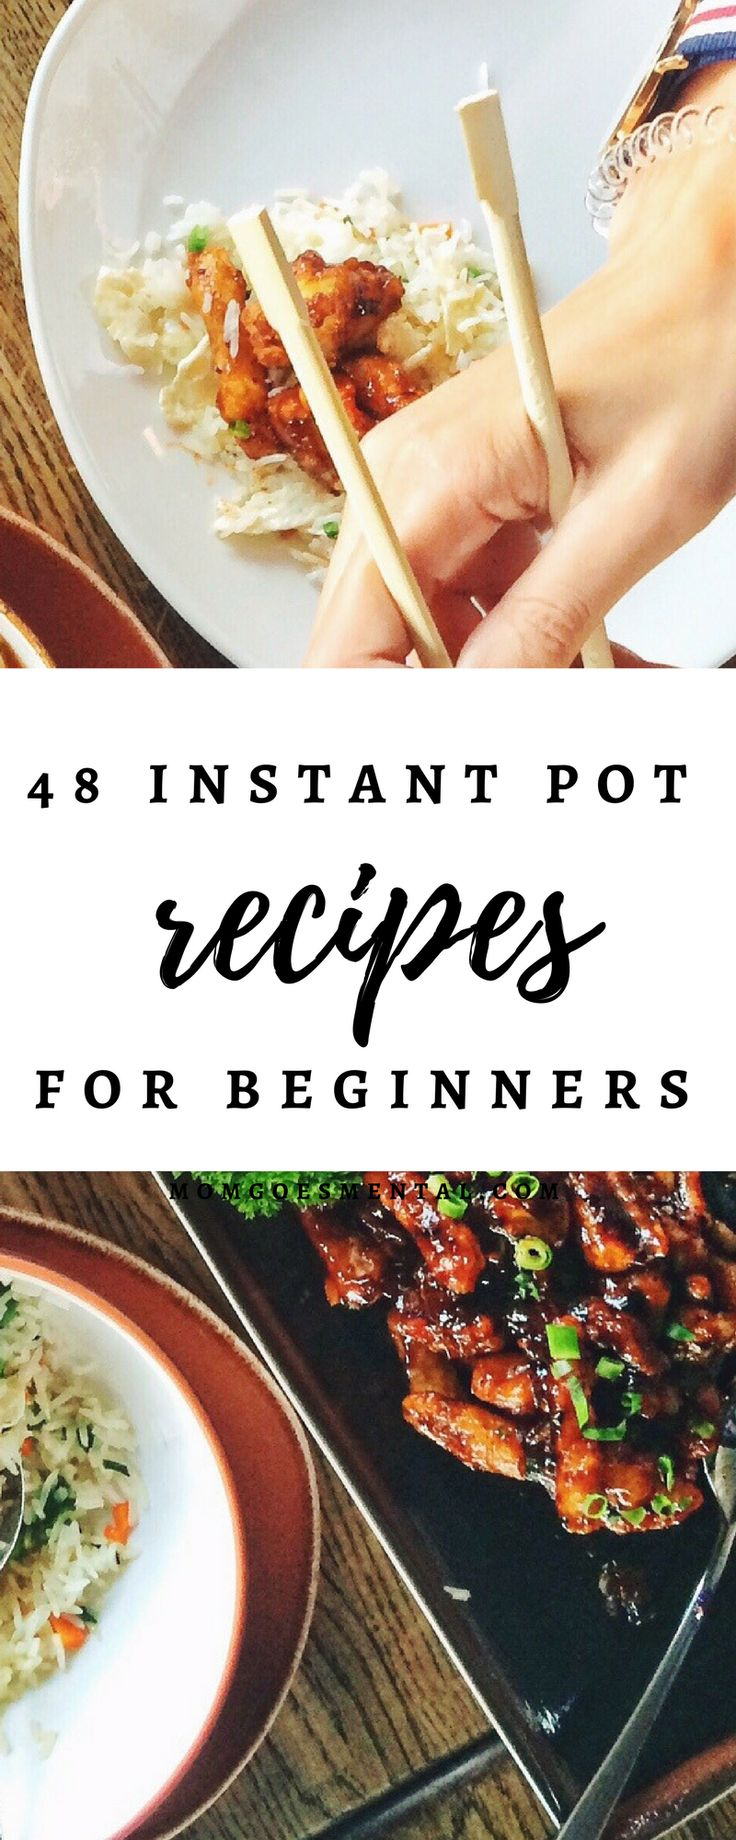 cooking recipes for beginners pdf